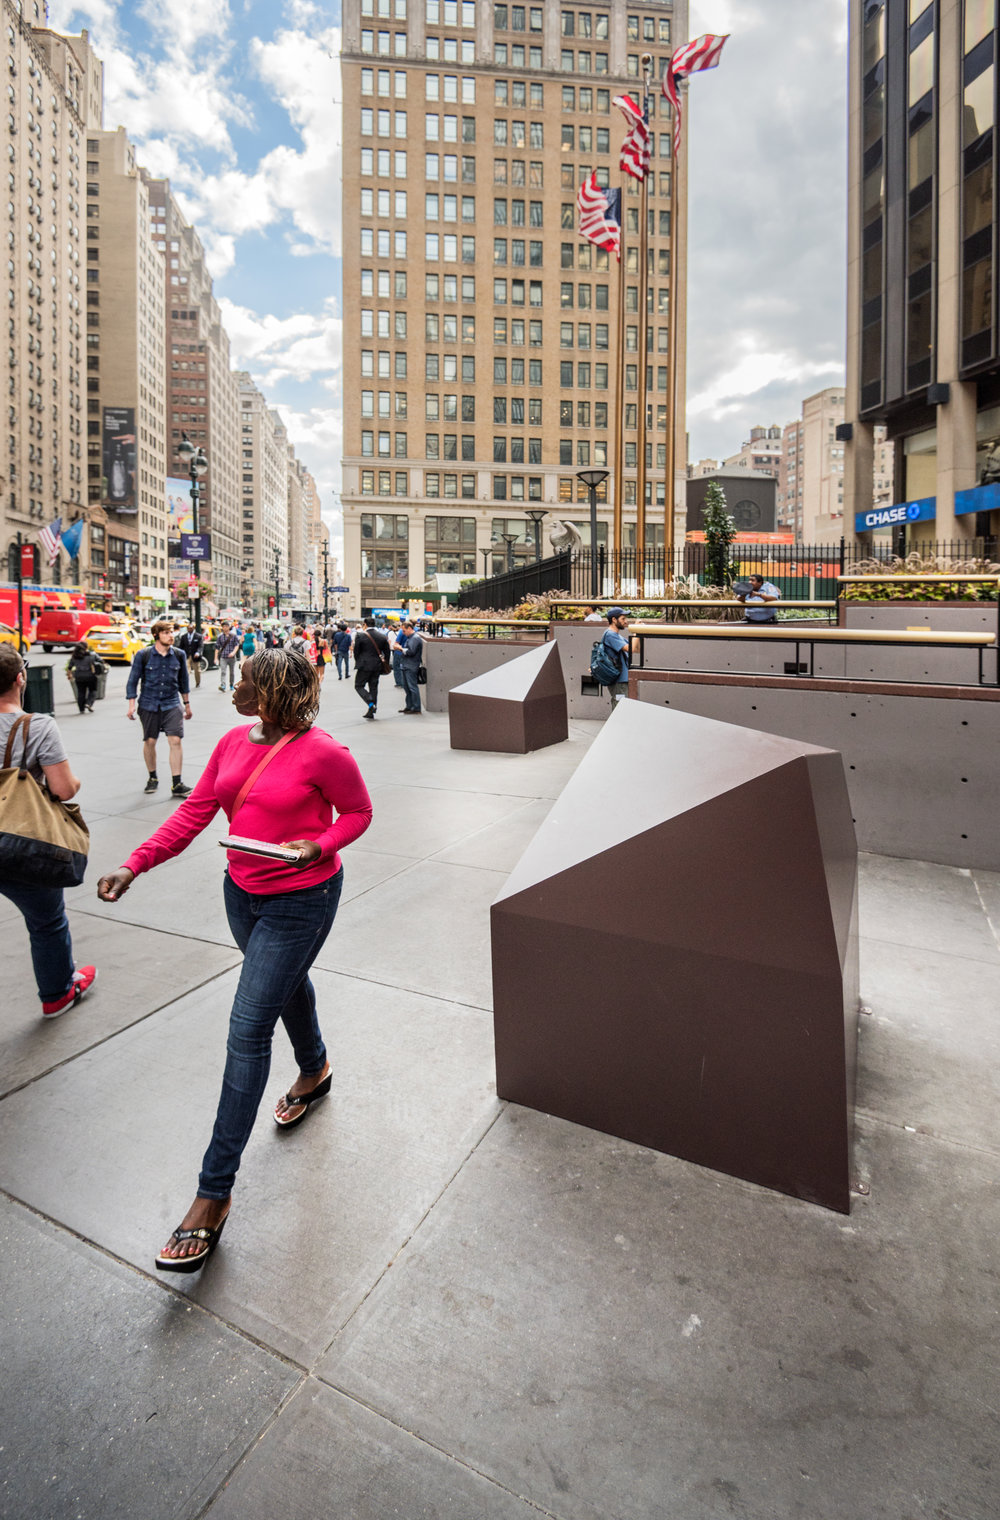 Bollards designed to  designed to be dynamic, prevent sitting on and add positively to the entry experience of the building and Penn Station, while limited vehicular access